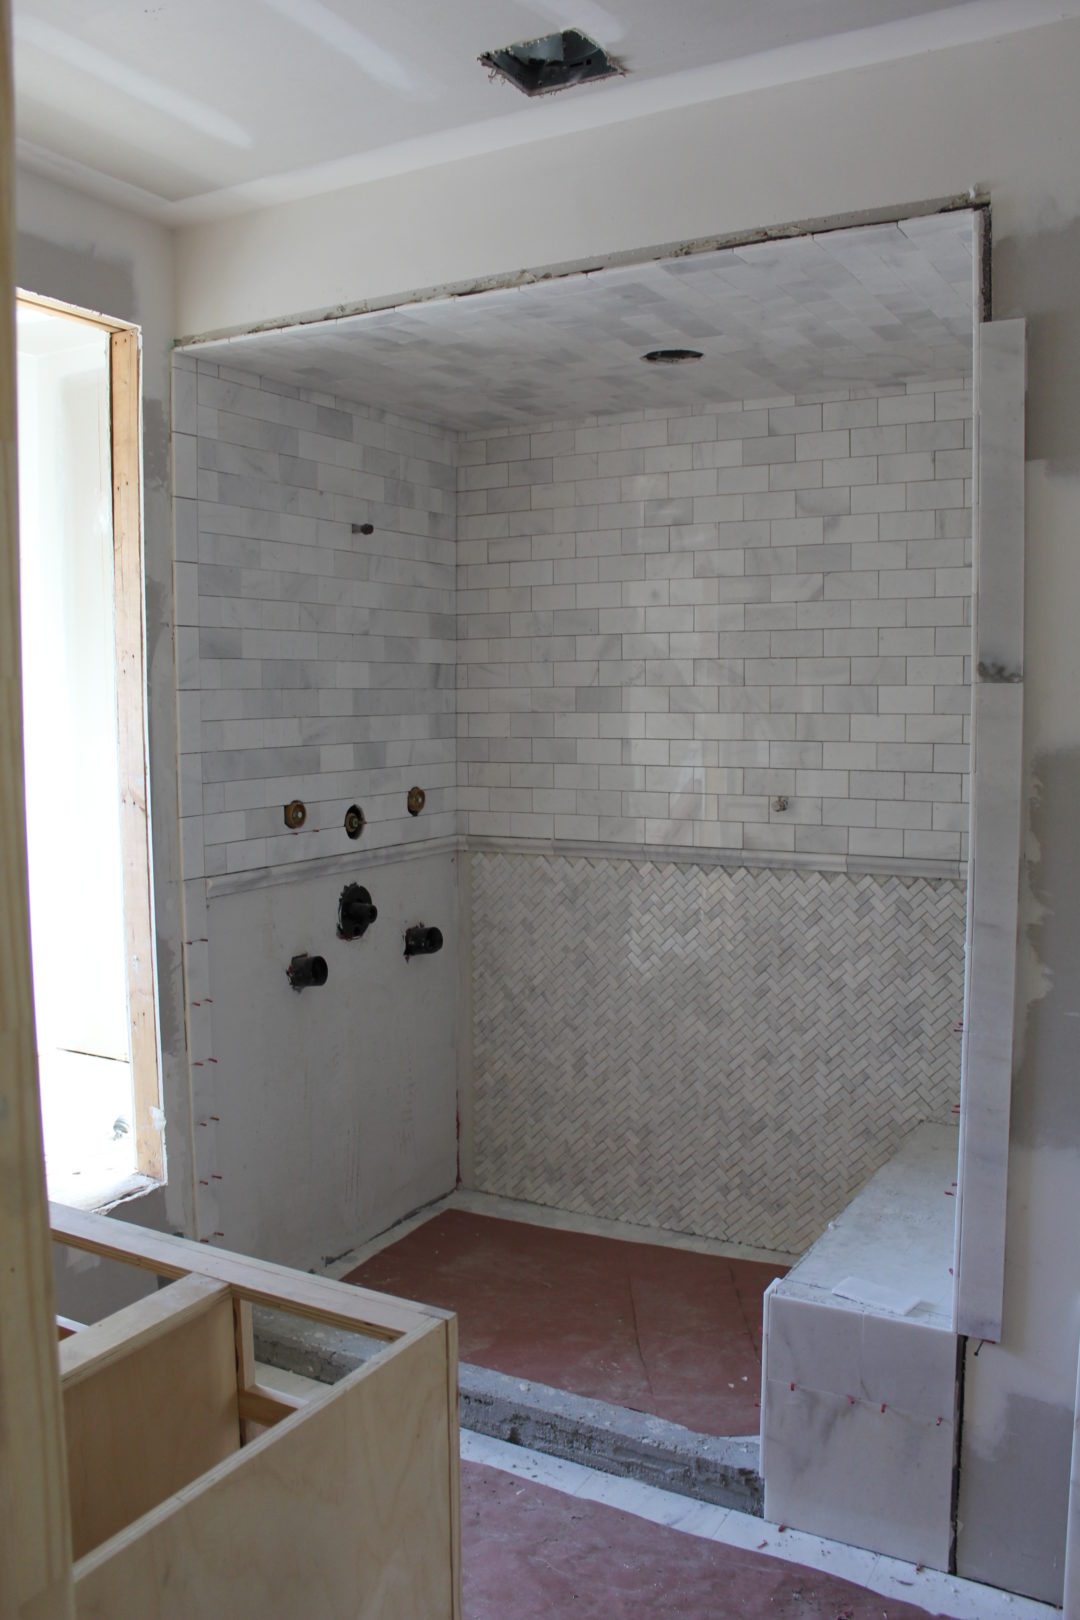 Tile tile and more tile laureen loves master shower we used snow white marble which is similar to carrara marble but it has a higher quartz content so it makes it more durable and the color is dailygadgetfo Image collections